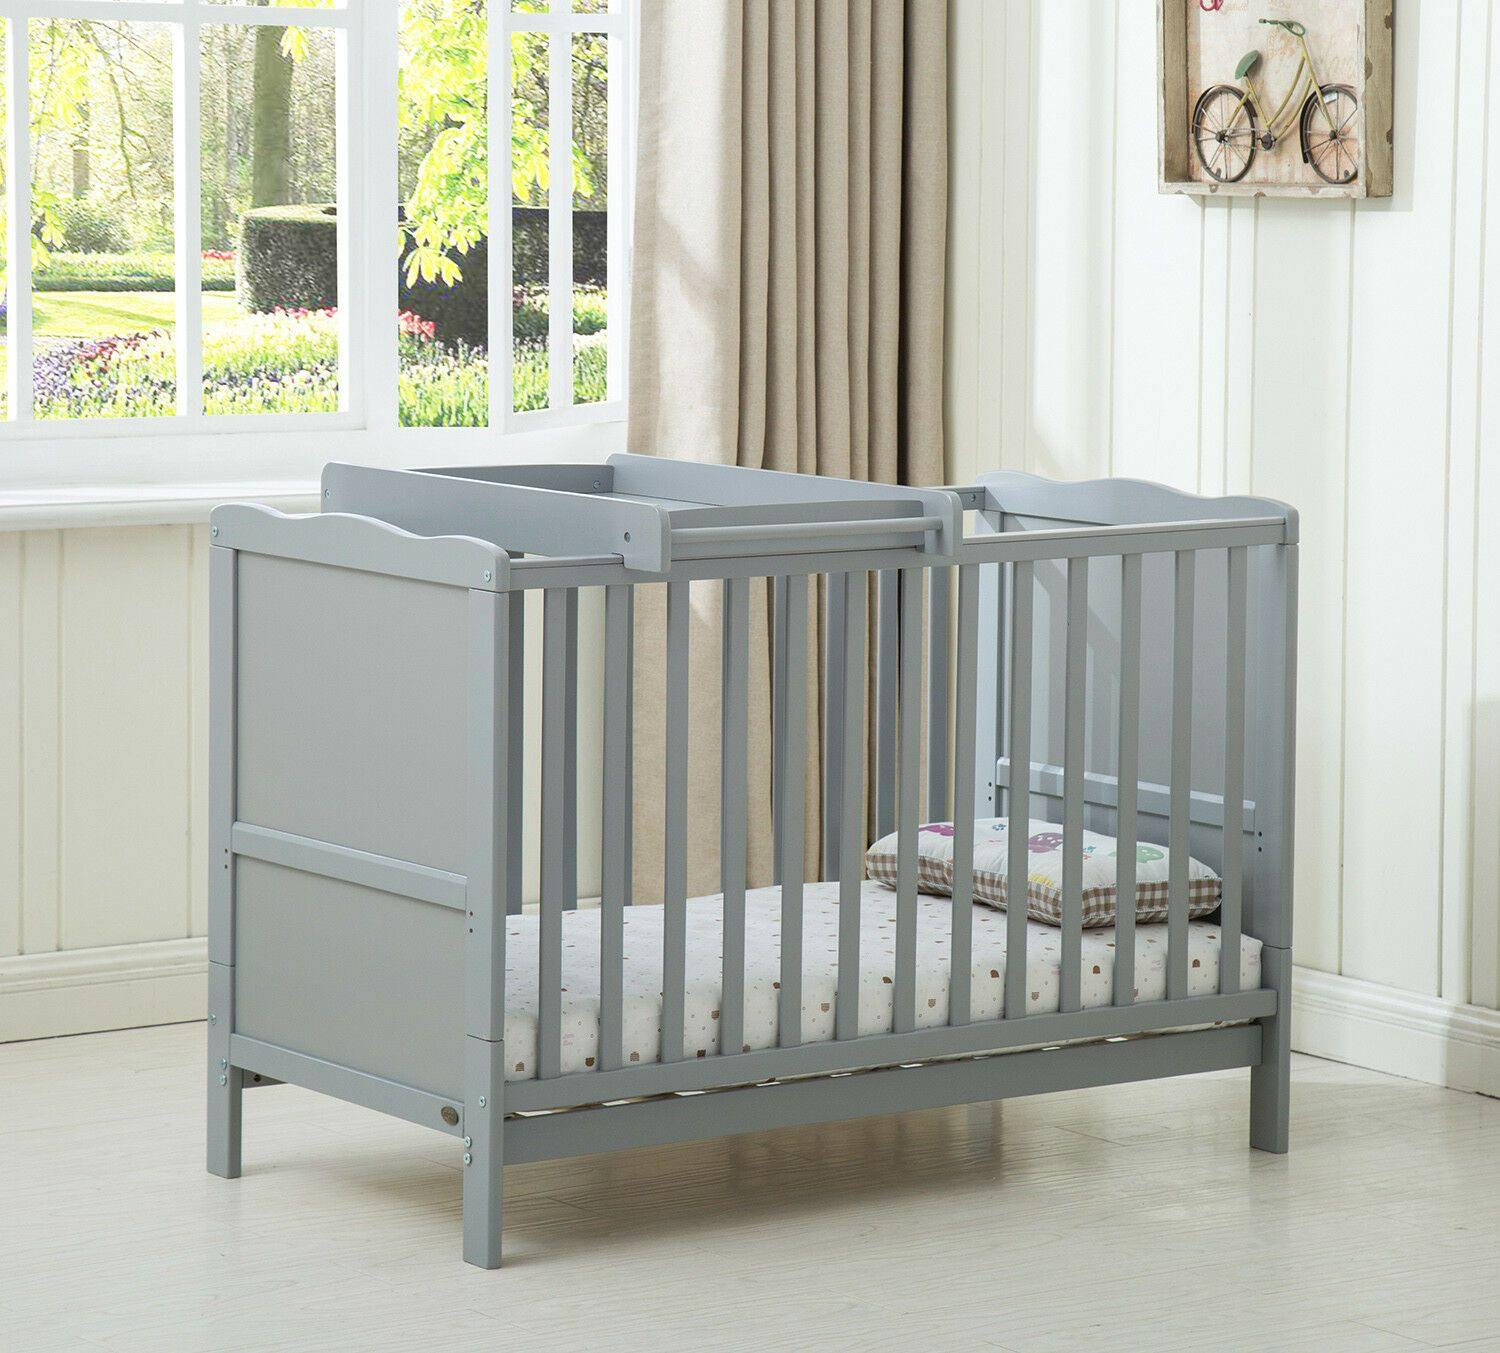 "Wooden Baby Cot ""Orlando"" Top Changer"